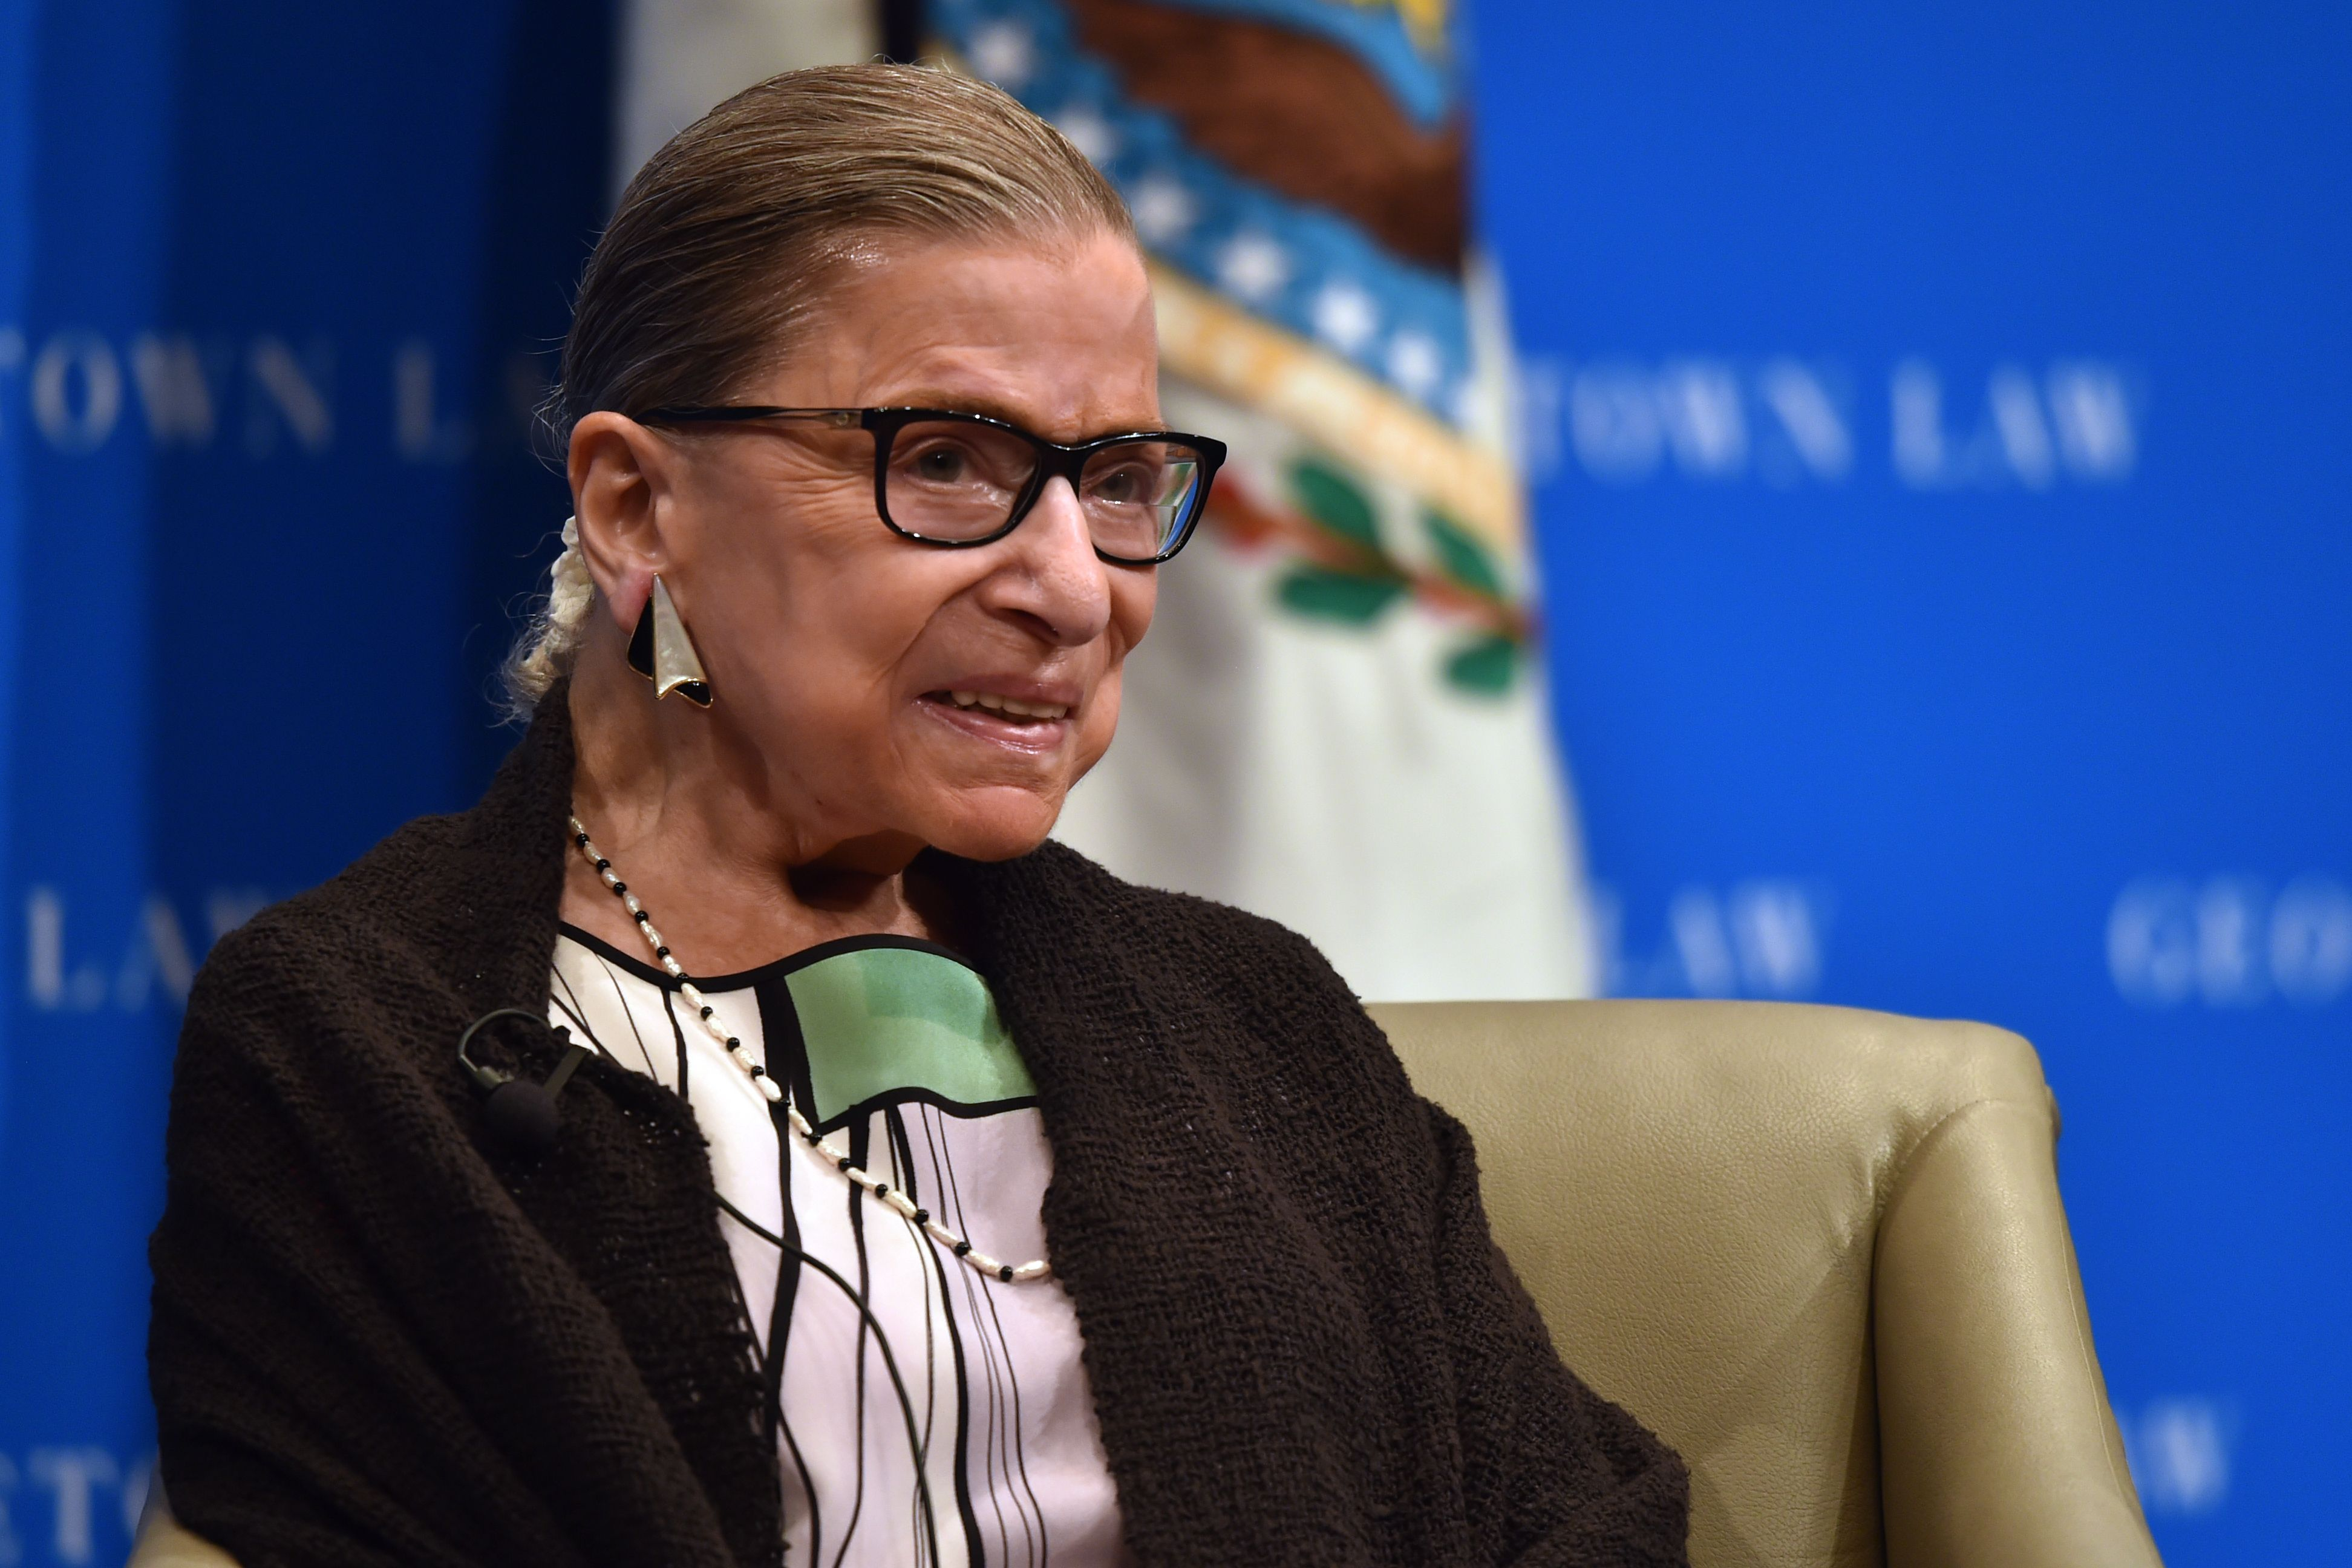 Supreme Court Ruth Bader Ginsburg speaks to Georgetown University law students on September 20, 2017 in Washington, DC.